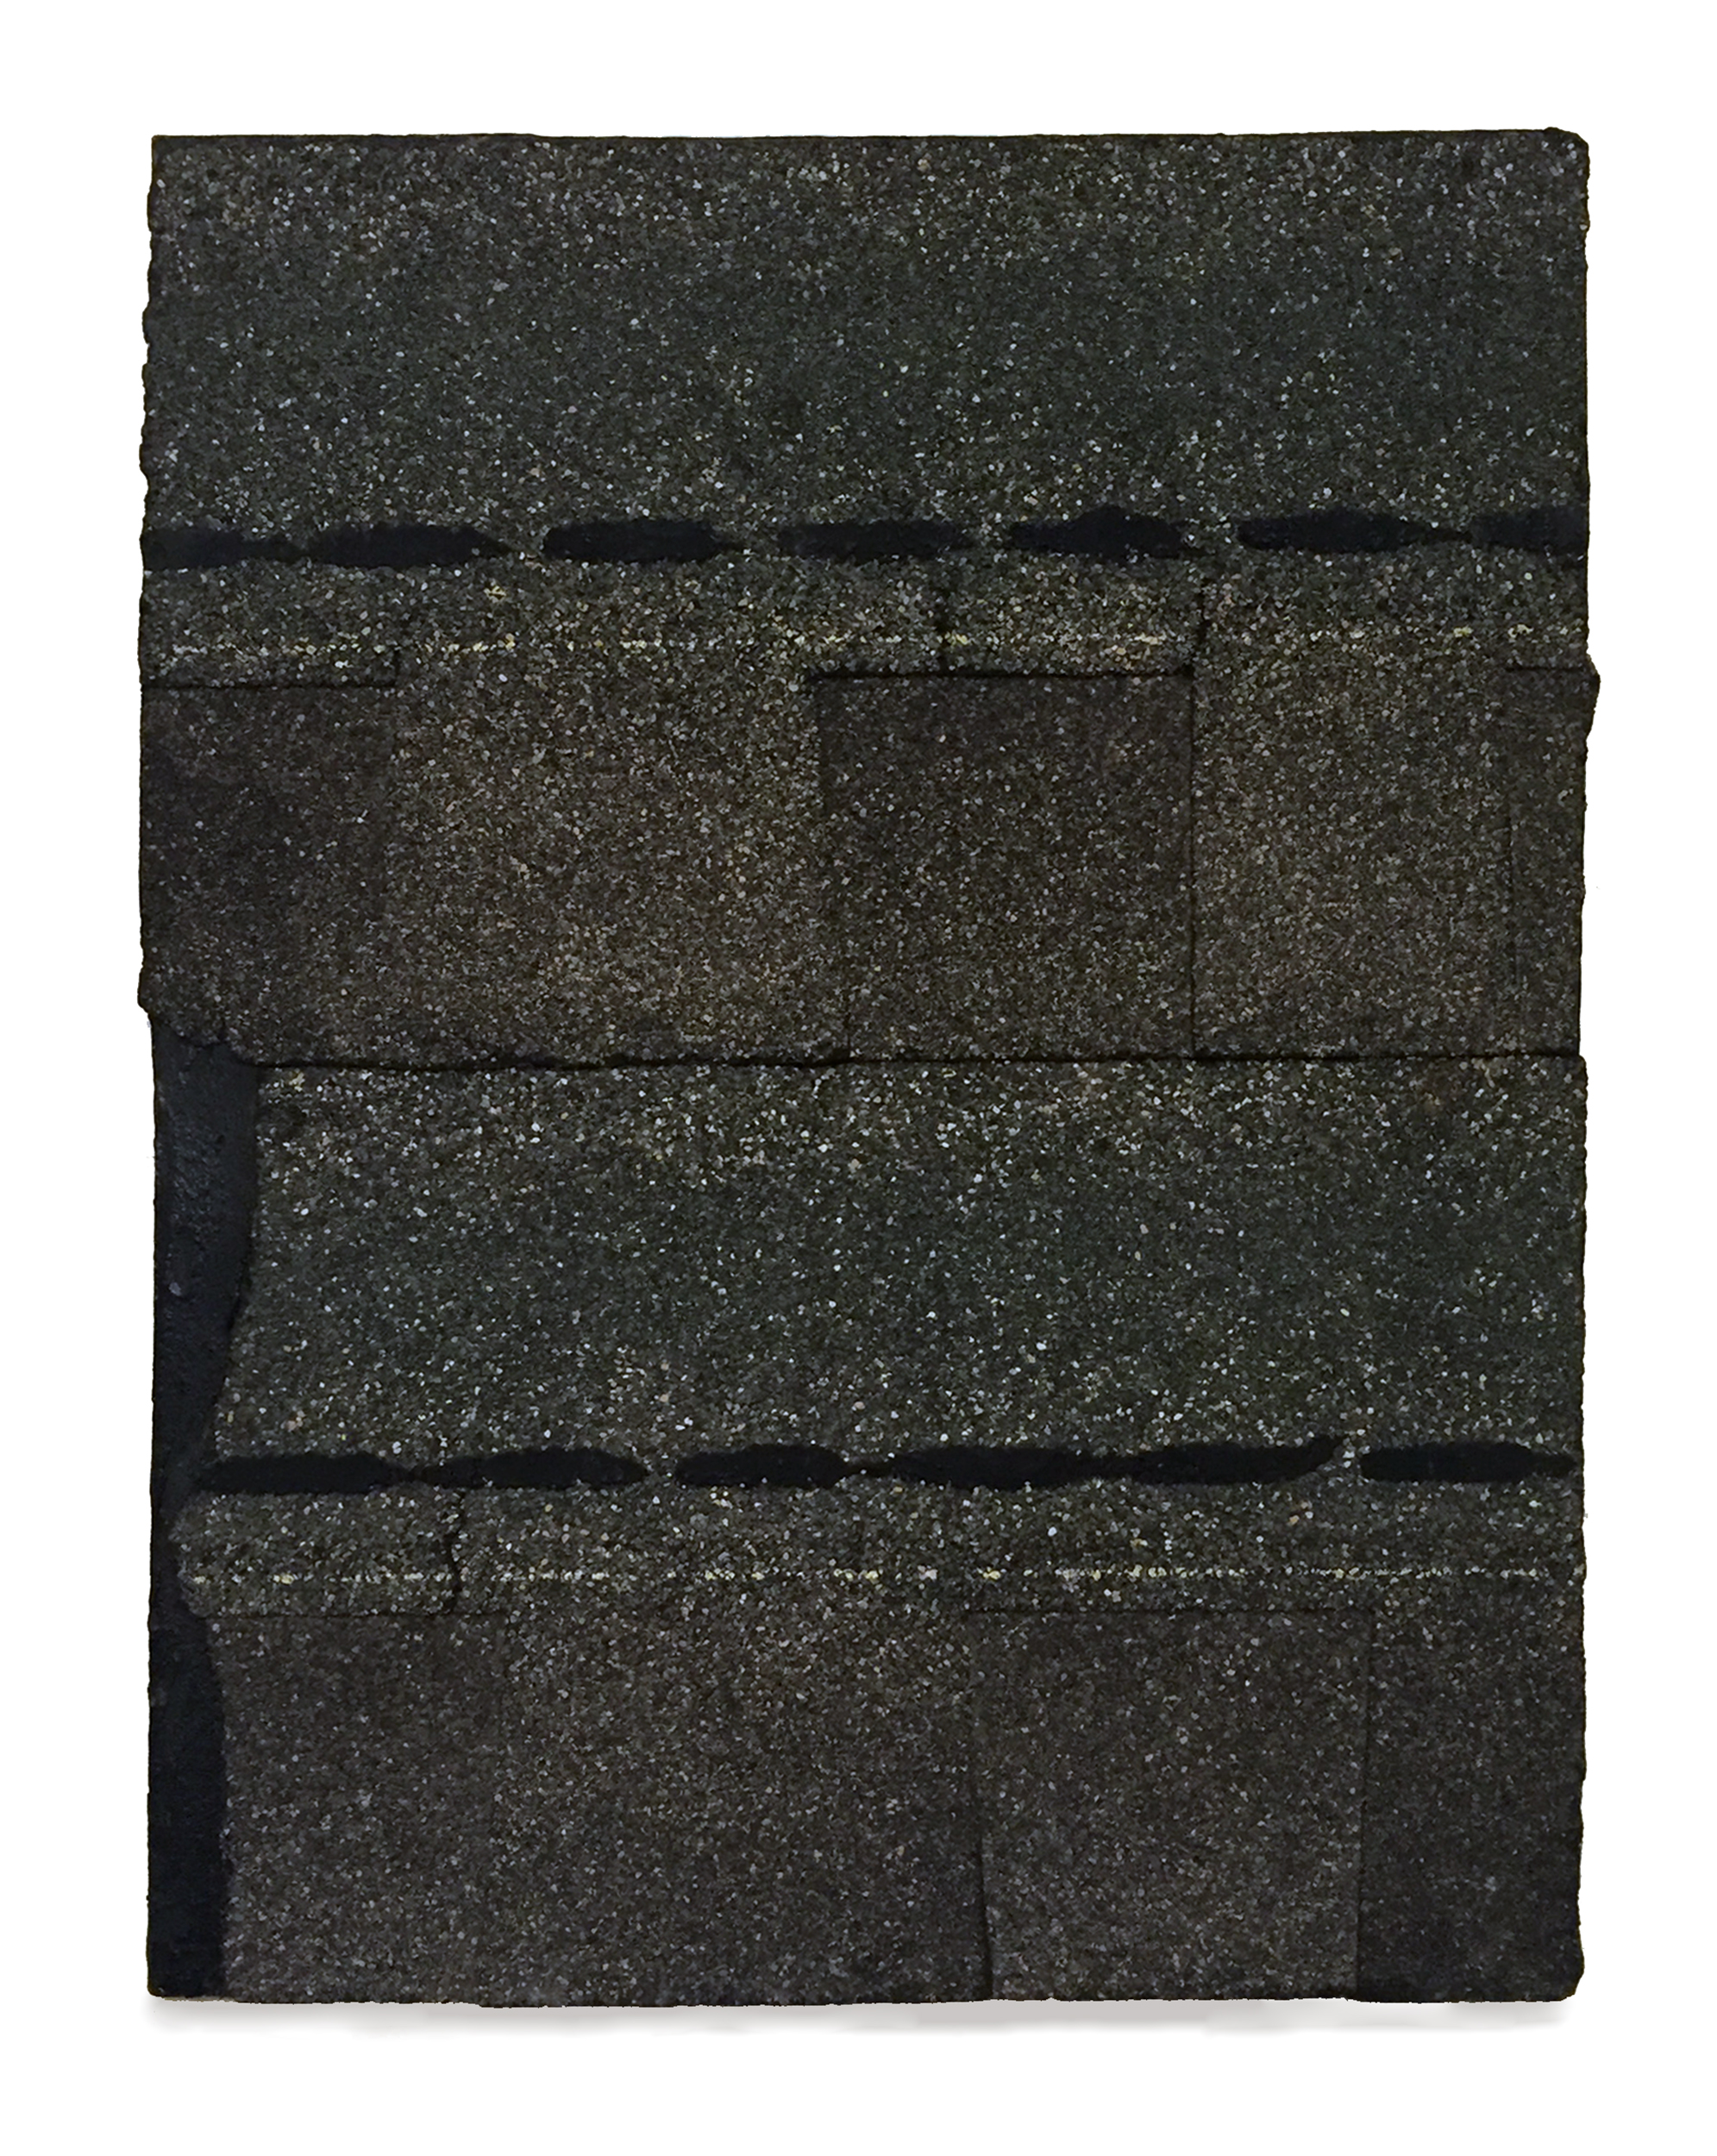 """Work on Canvas, 2013, roofing tar and shingles on canvas, 24"""" x 18"""""""